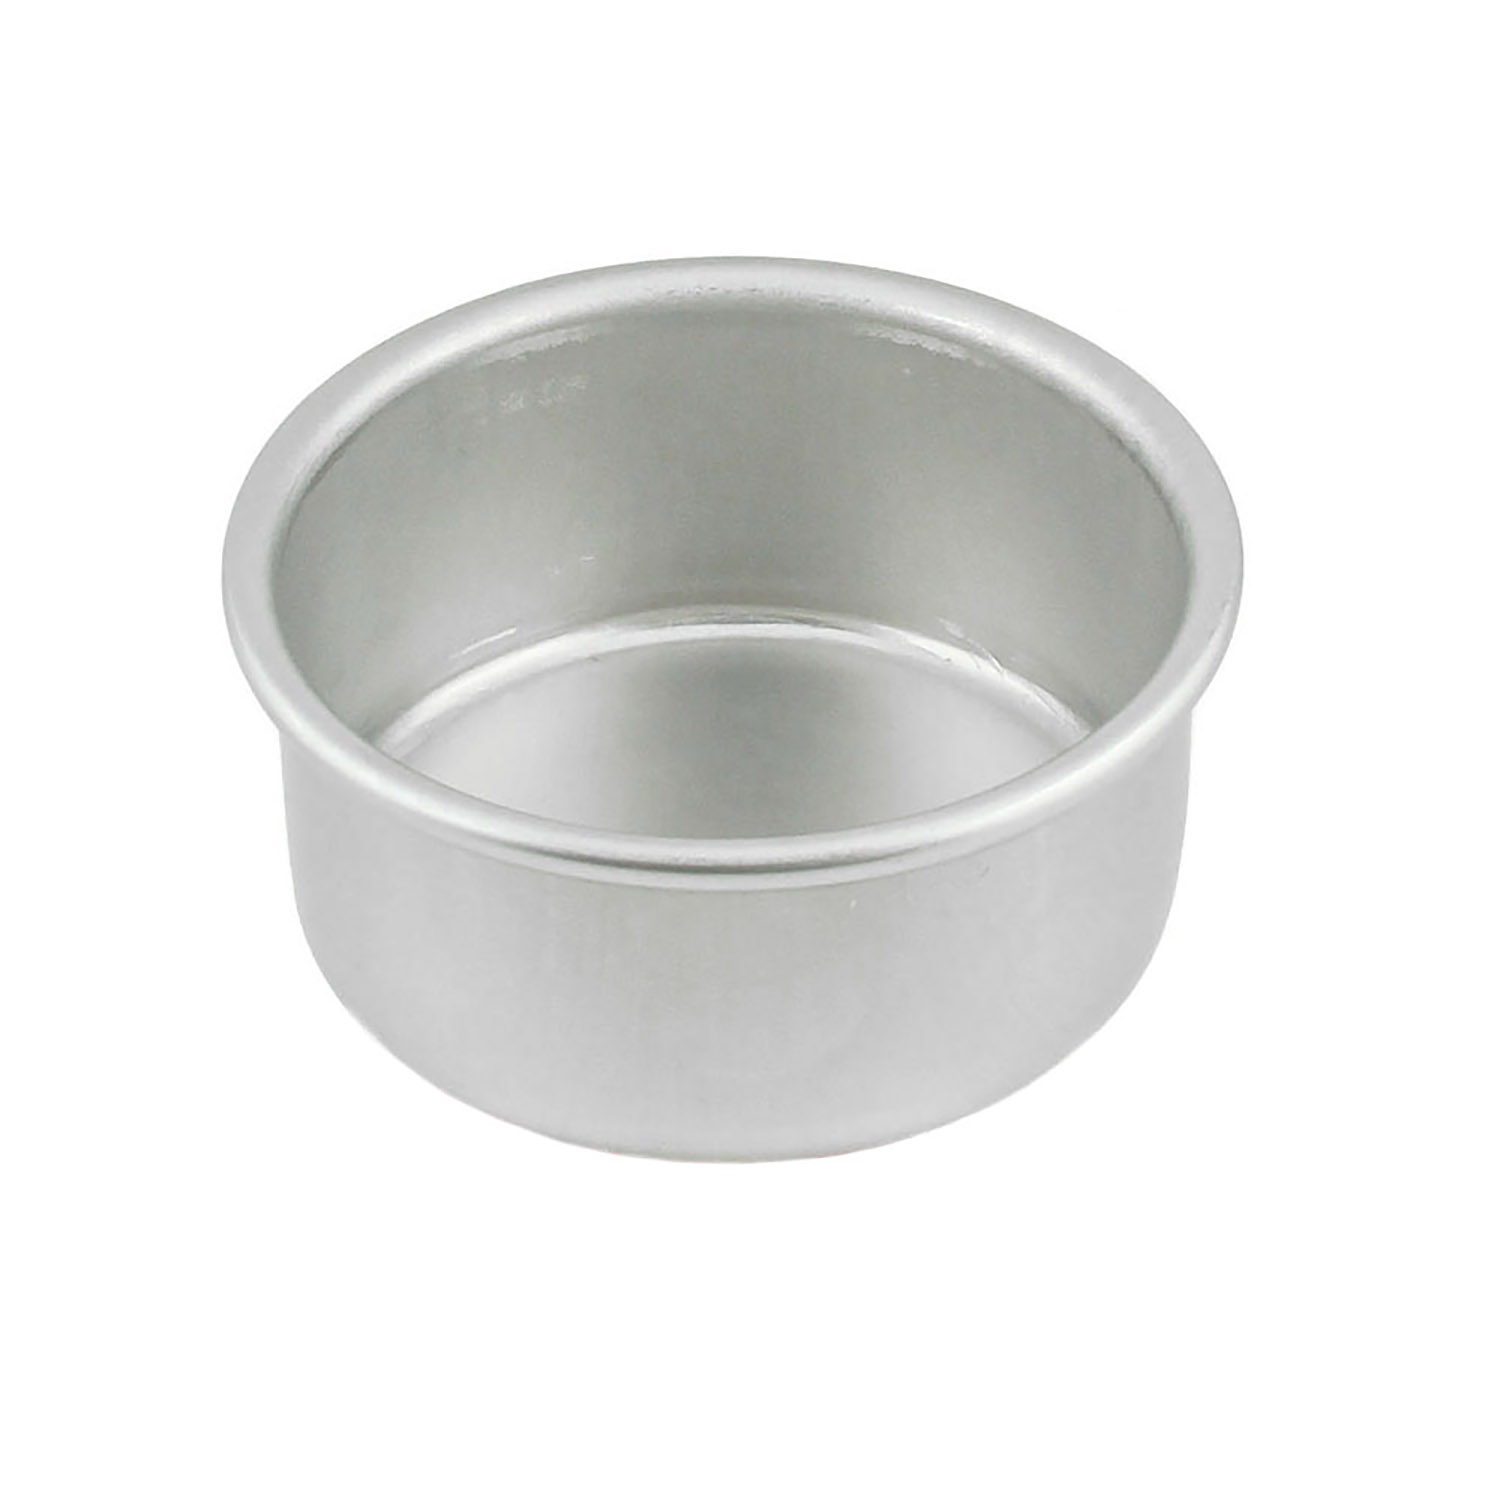 "4 x 2"" Magic Line Round Cake Pan"